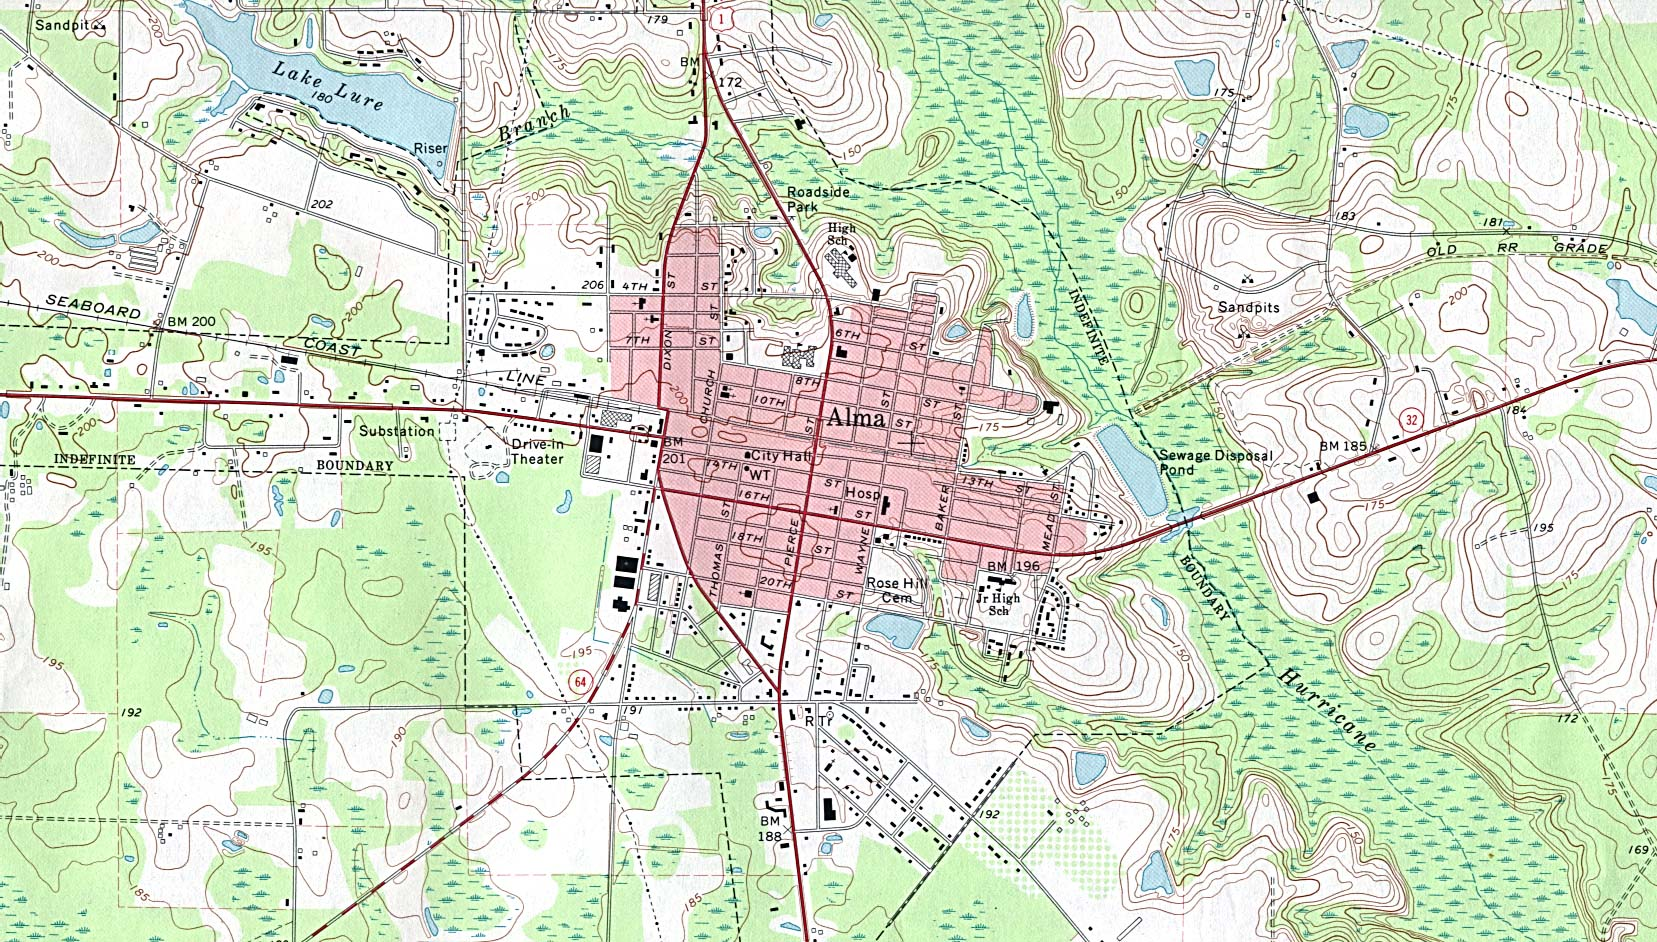 Alma Topographic City Map, Georgia, United States